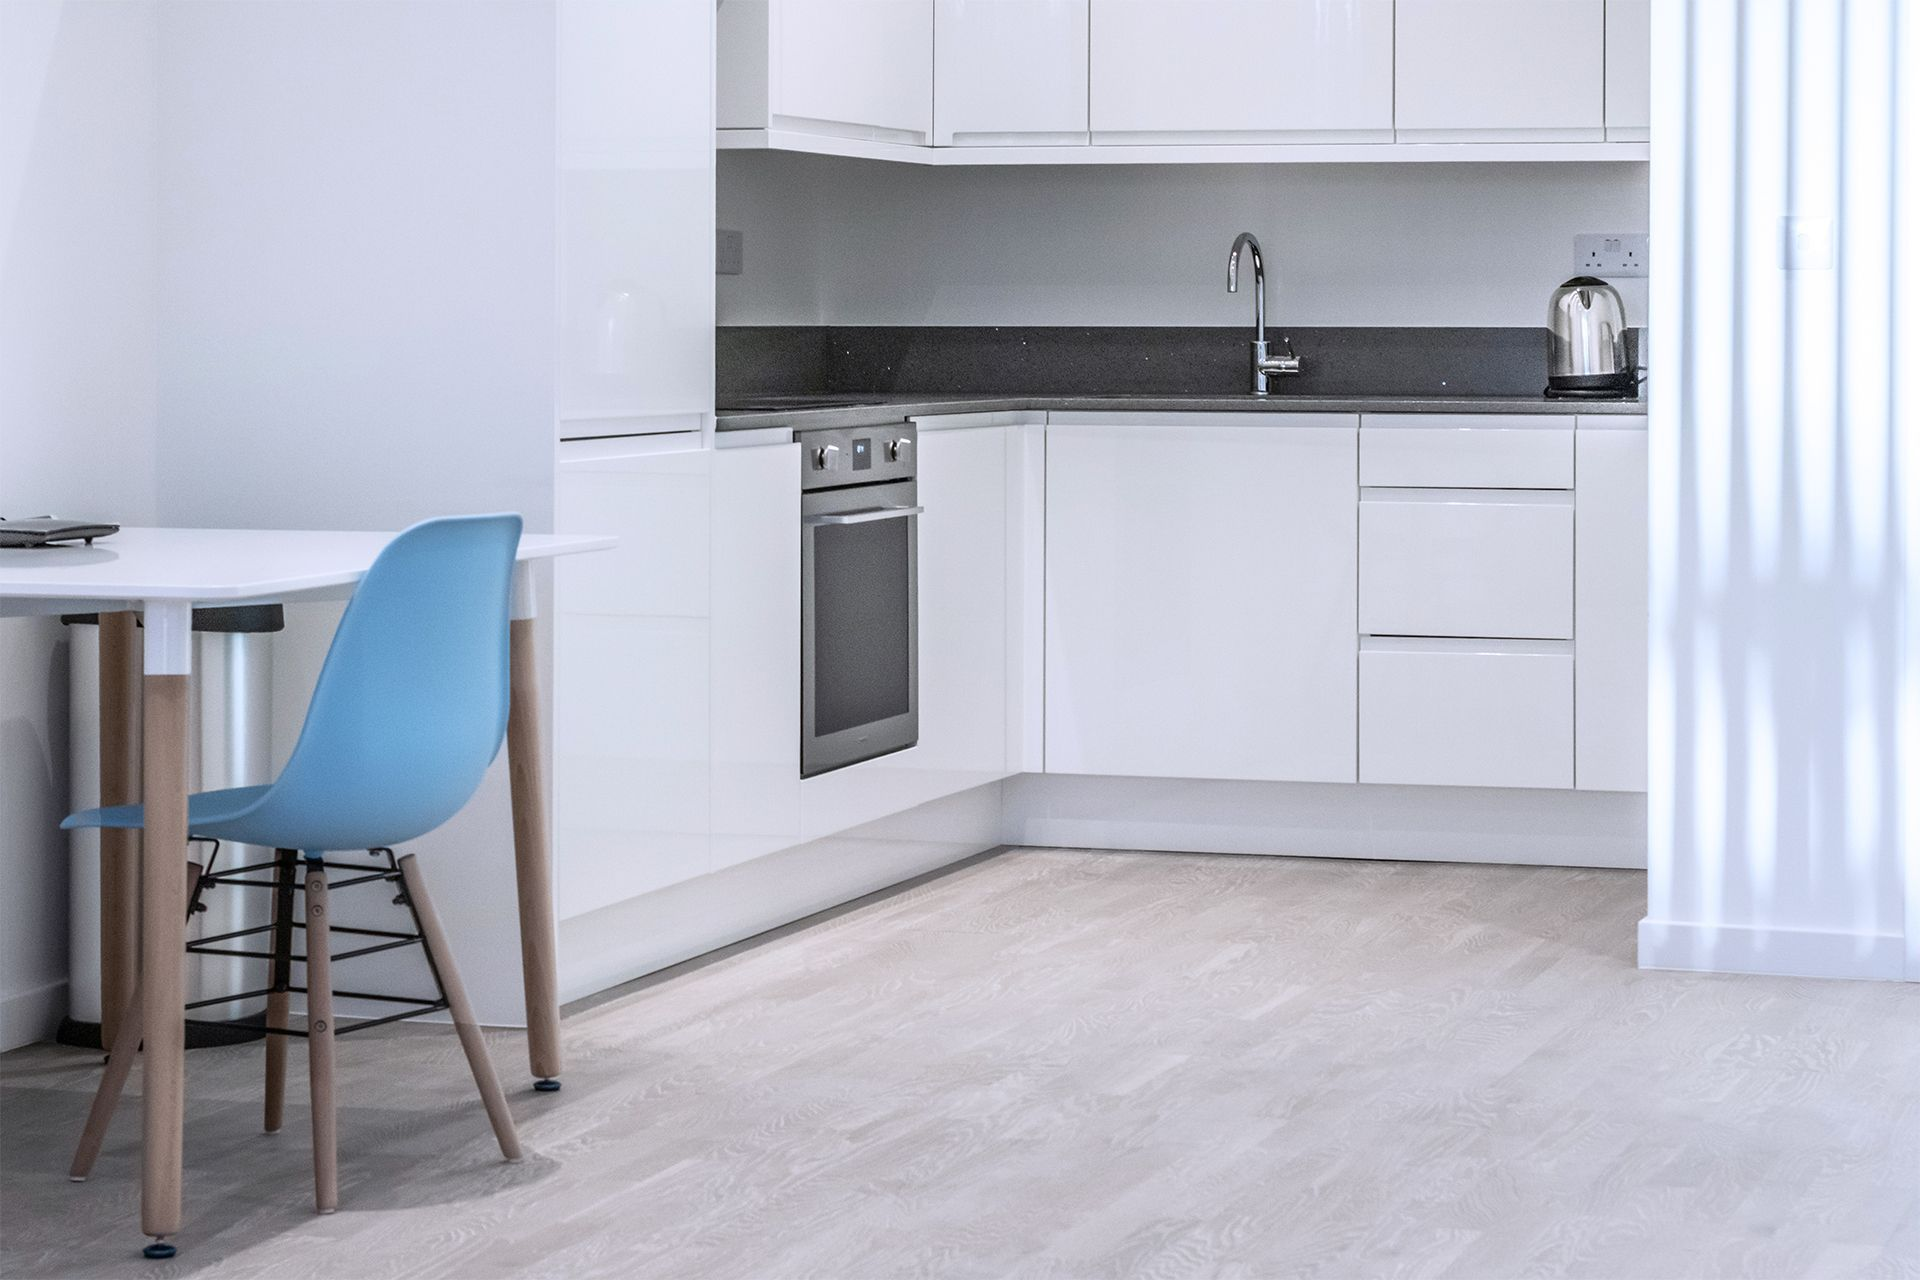 1 Bedroom apartment to rent in London VIL-SA-0039